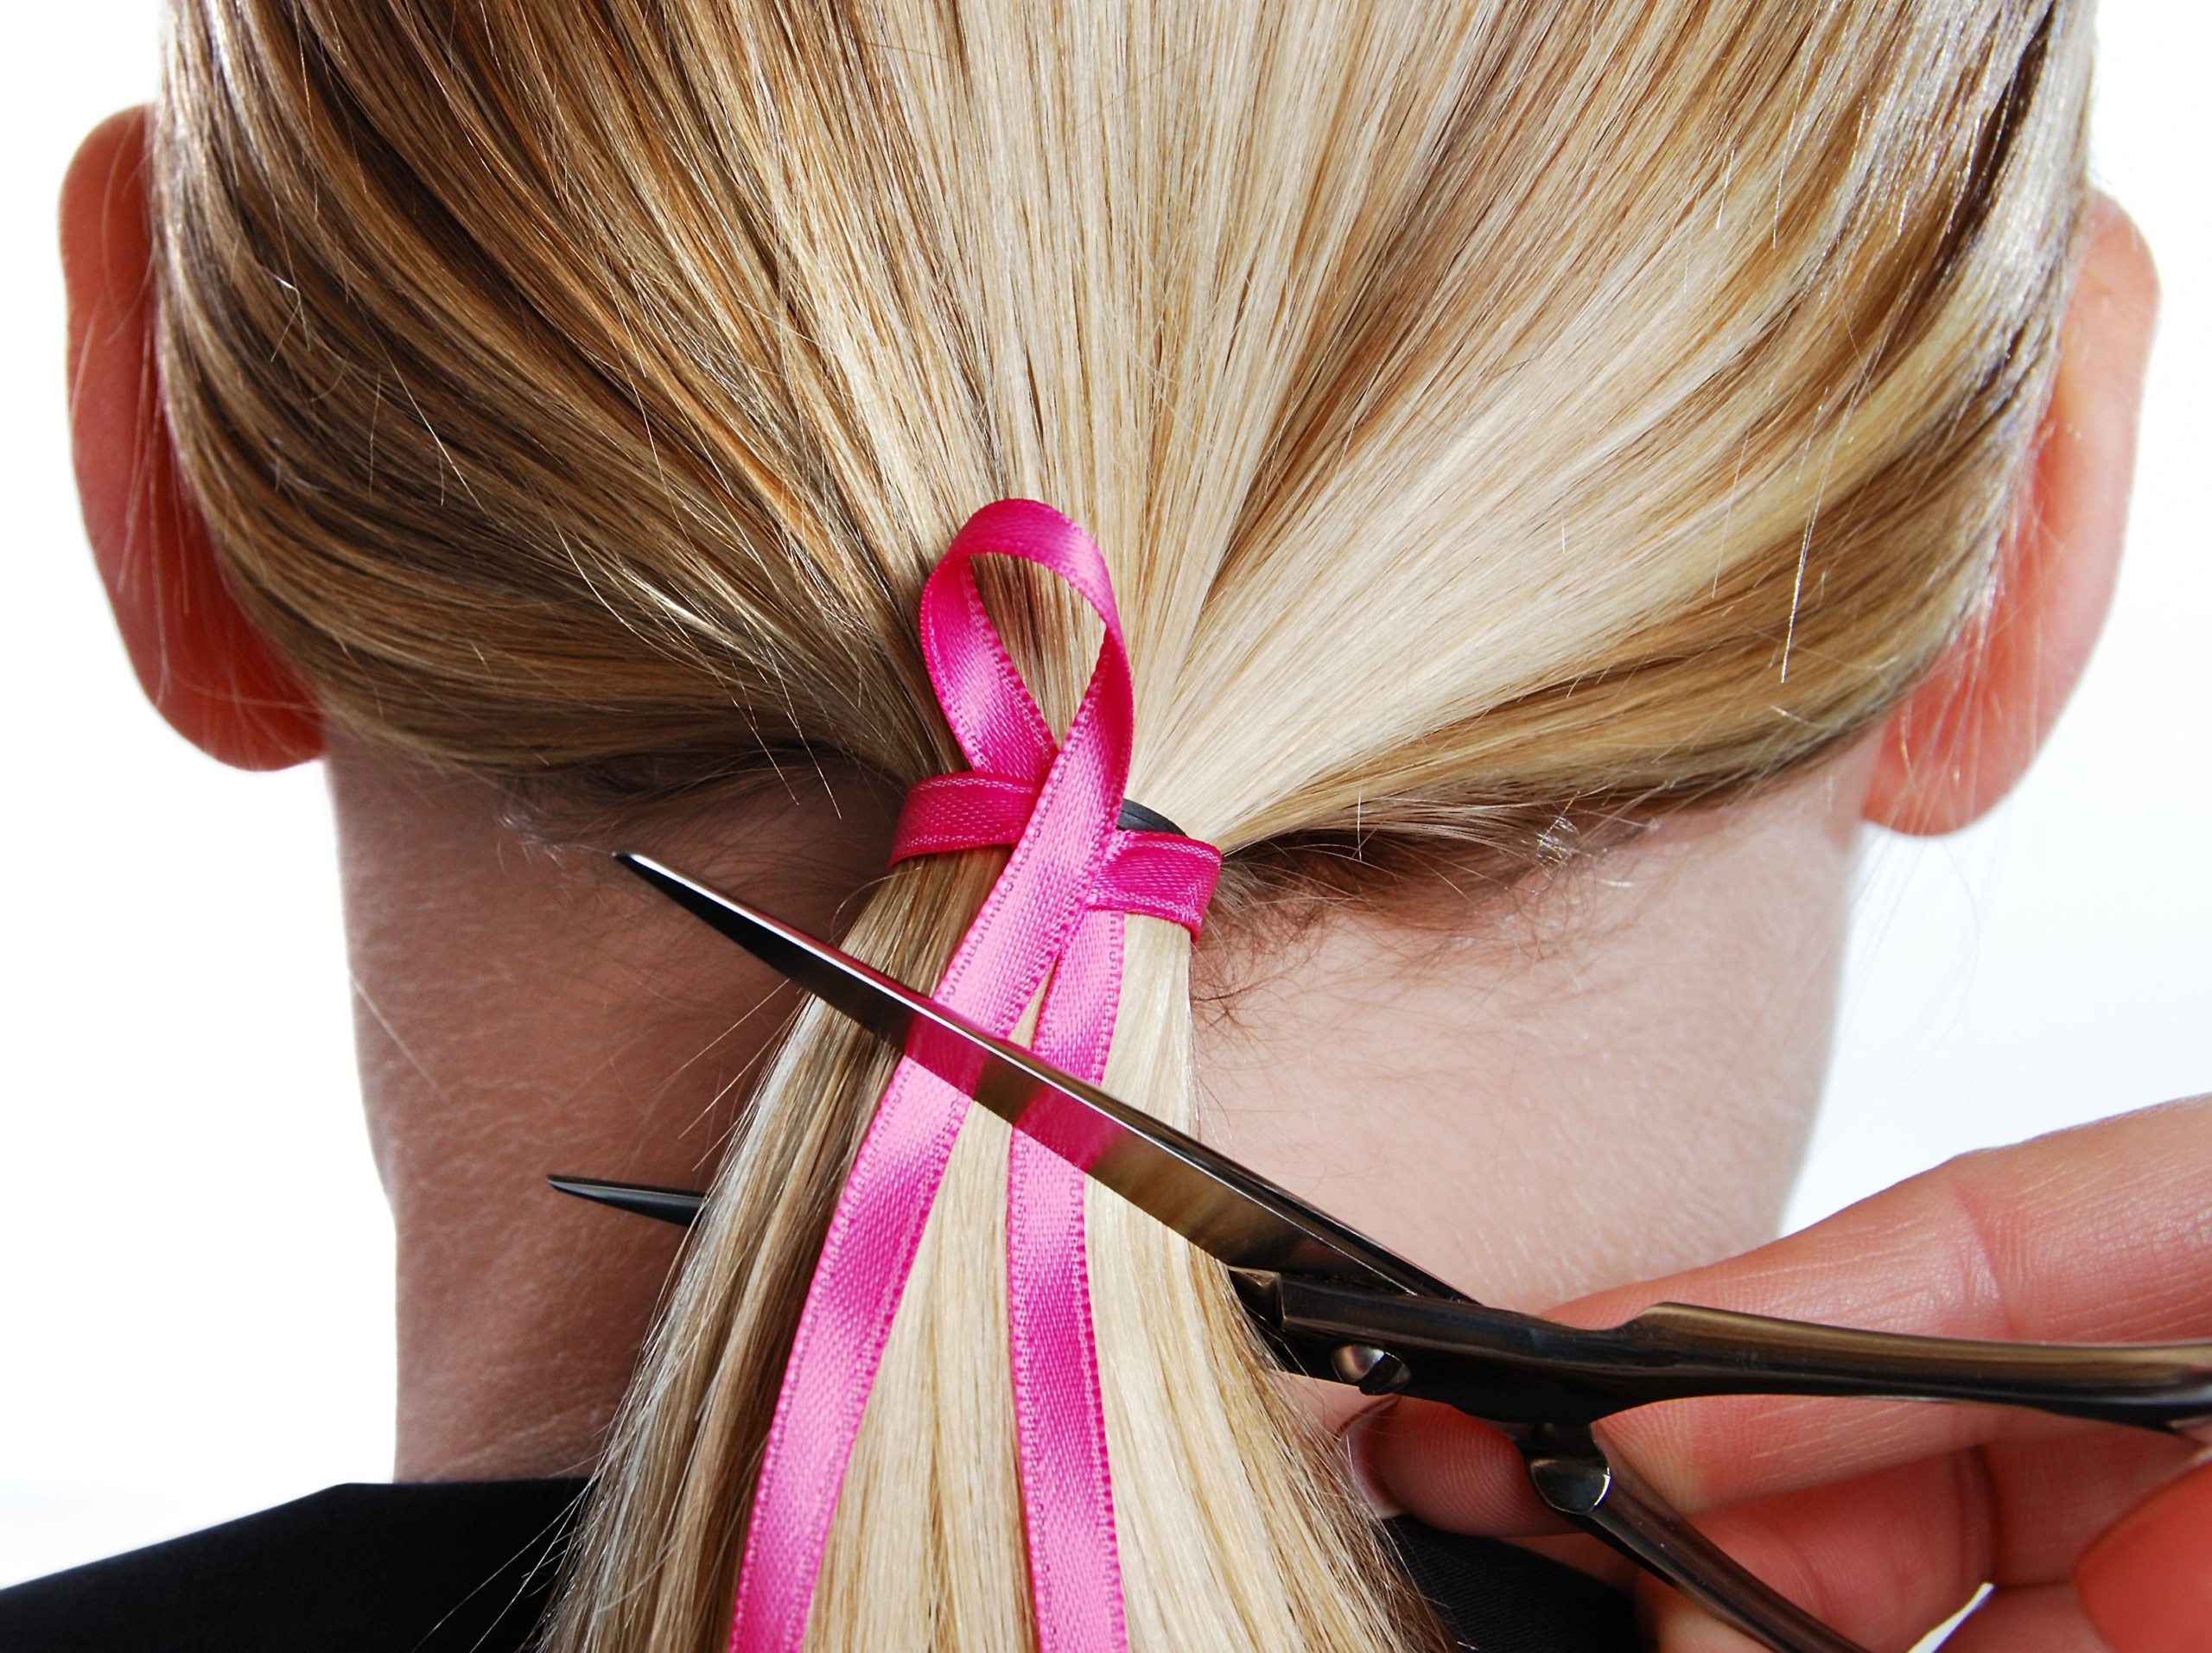 Places to Donate Hair for Hair Transplant & Hair Replacement